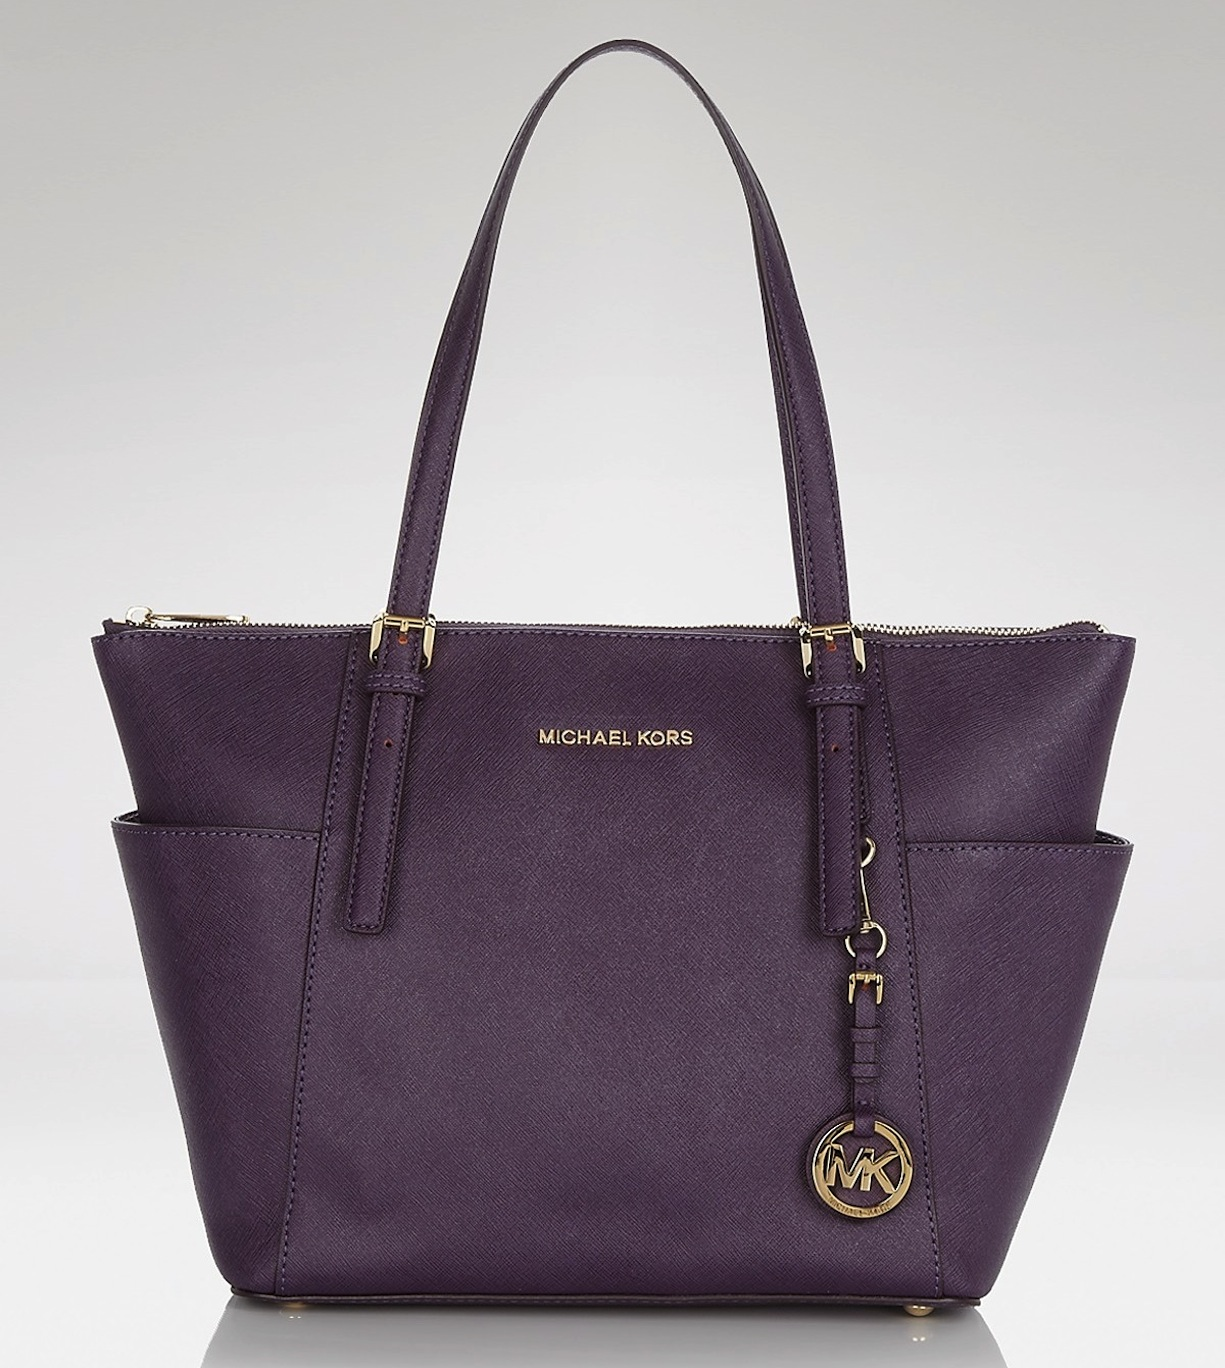 bags crush by designer michael kors � glammed up me blog